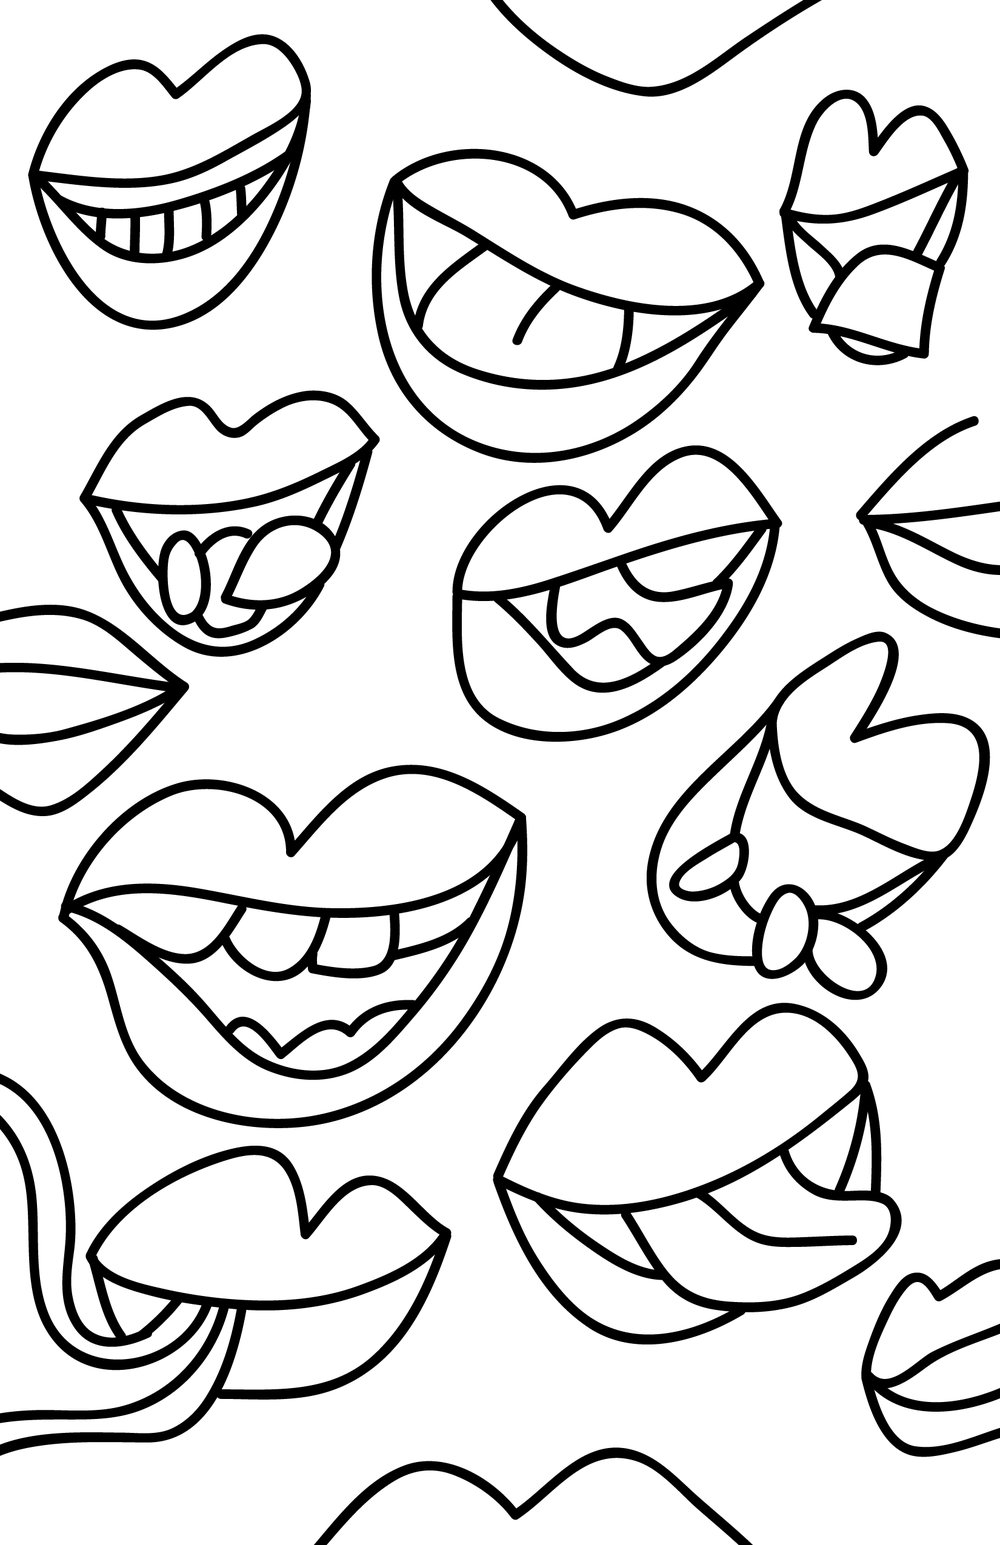 Many mouths